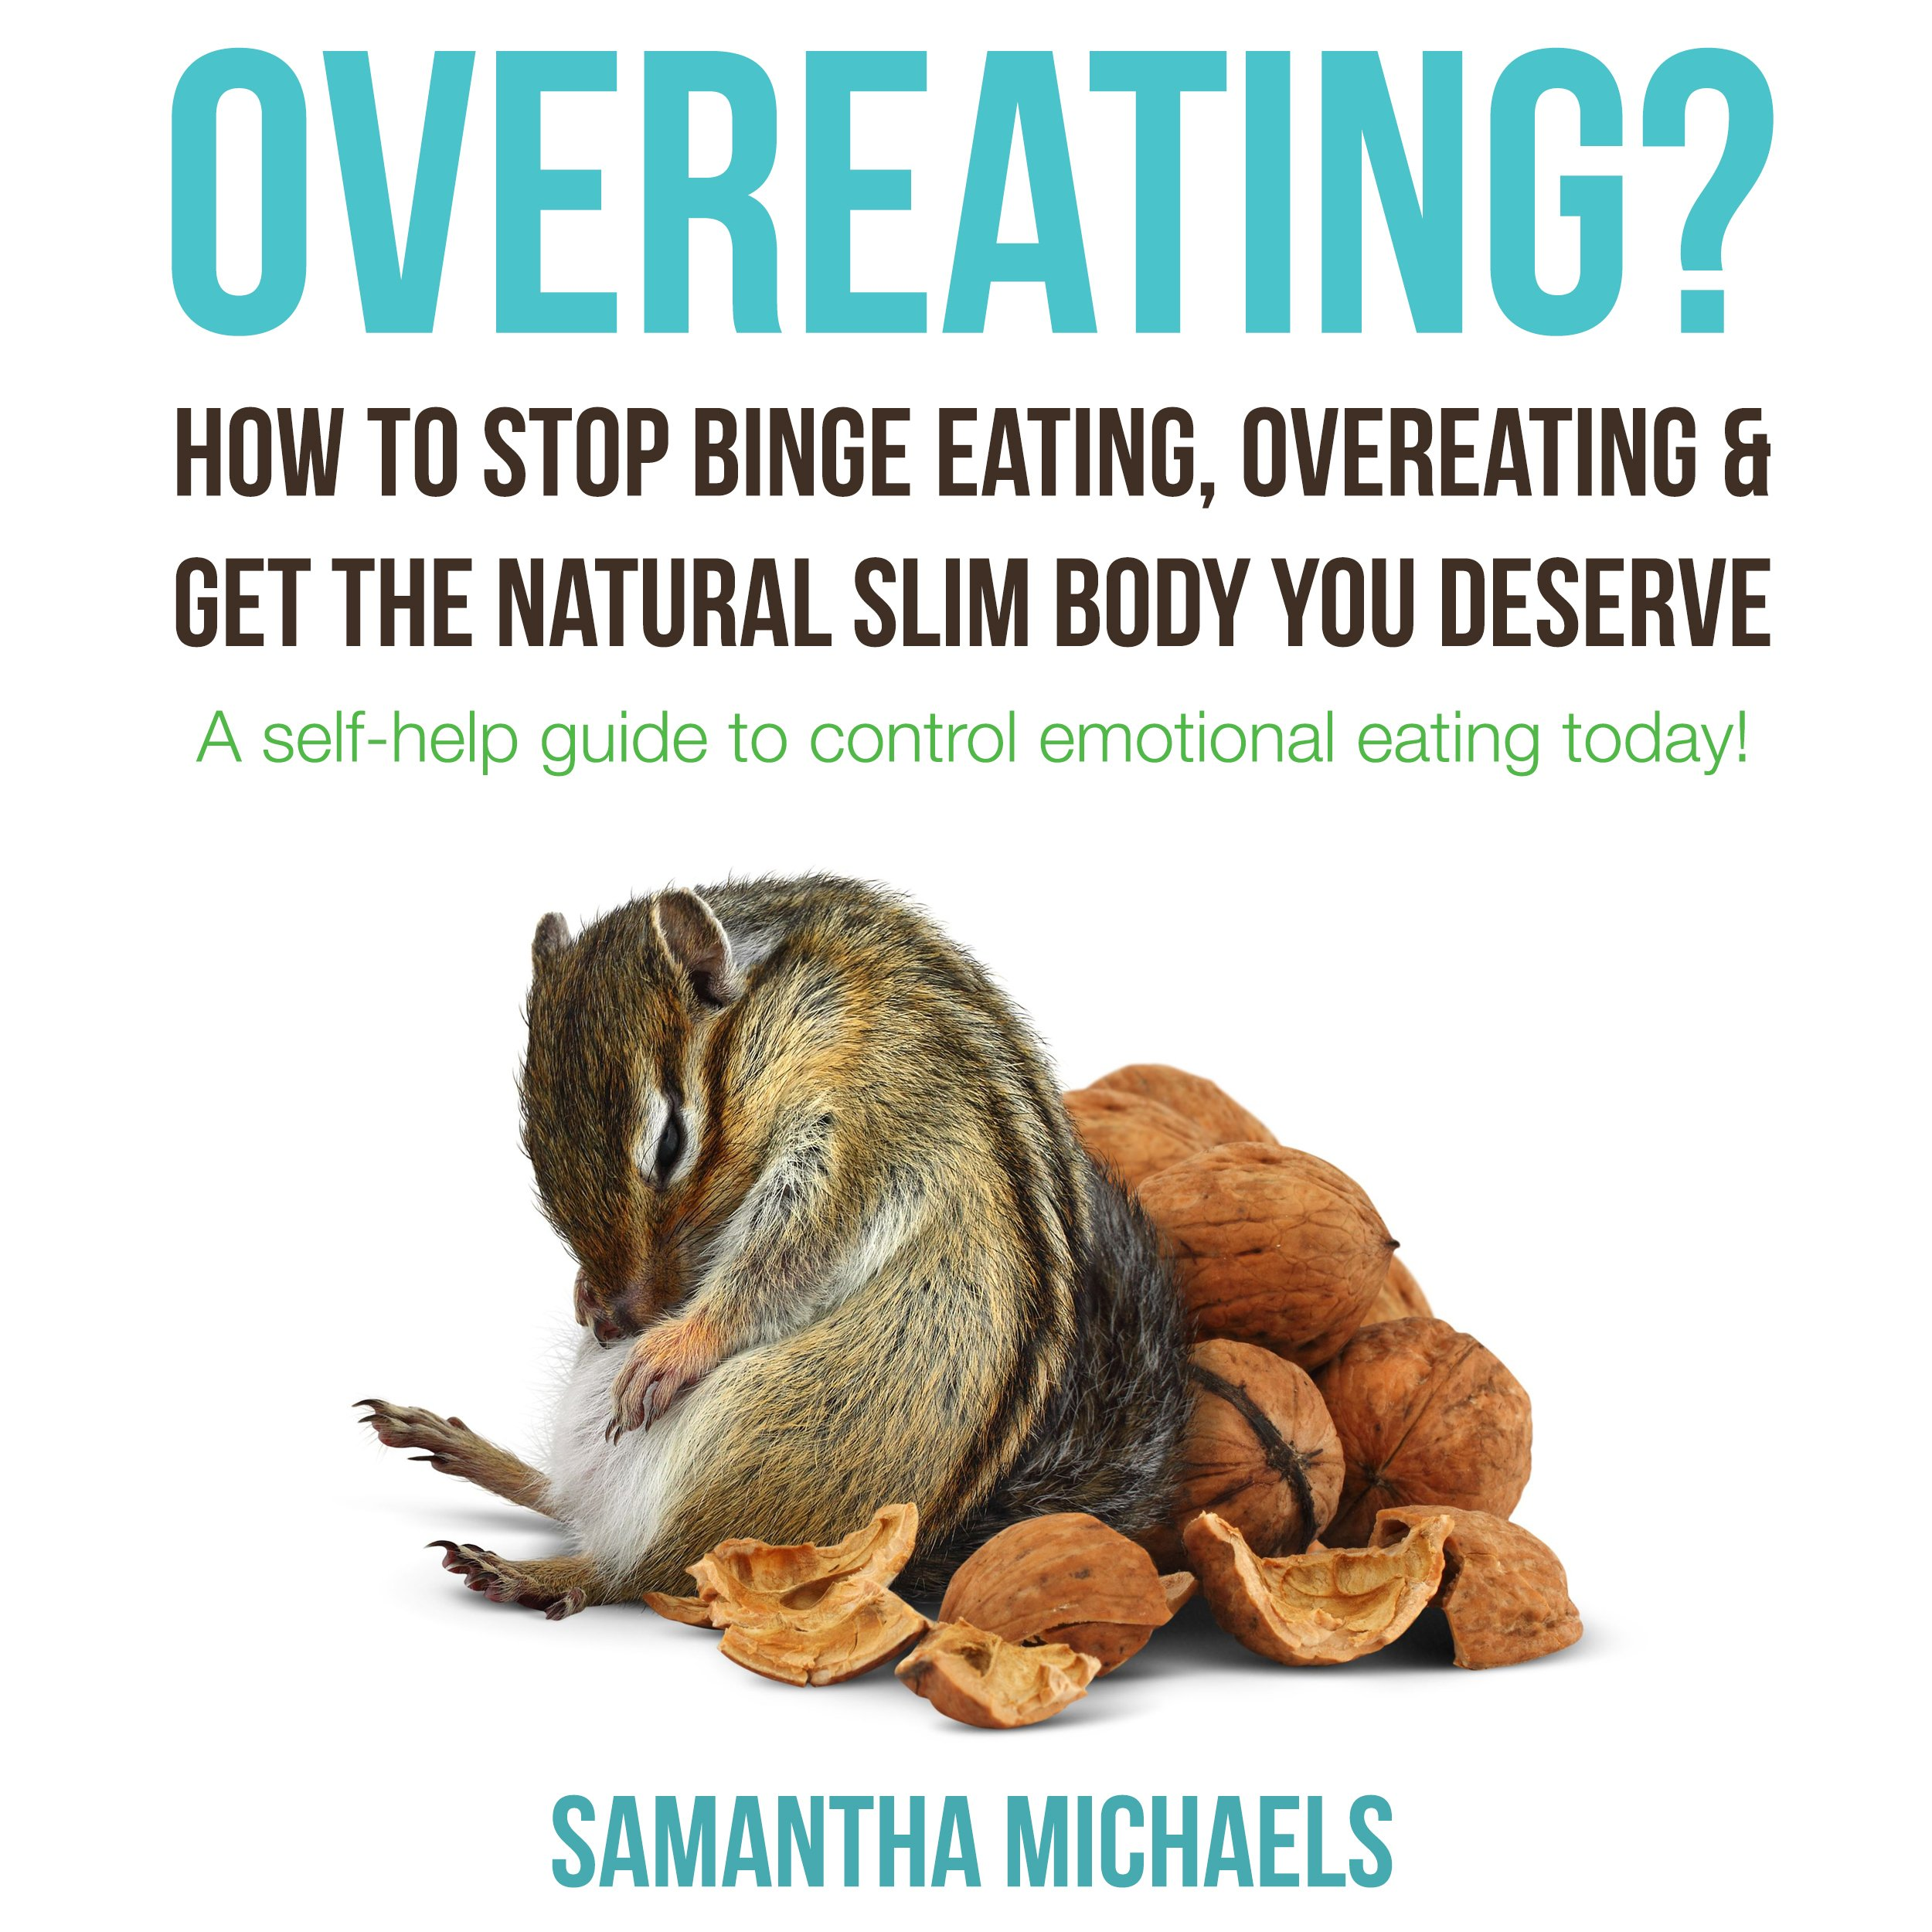 Overeating  How To Stop Binge Eating Overeating And Get The Natural Slim Body You Deserve  A Self Help Guide To Control Emotional Eating Today